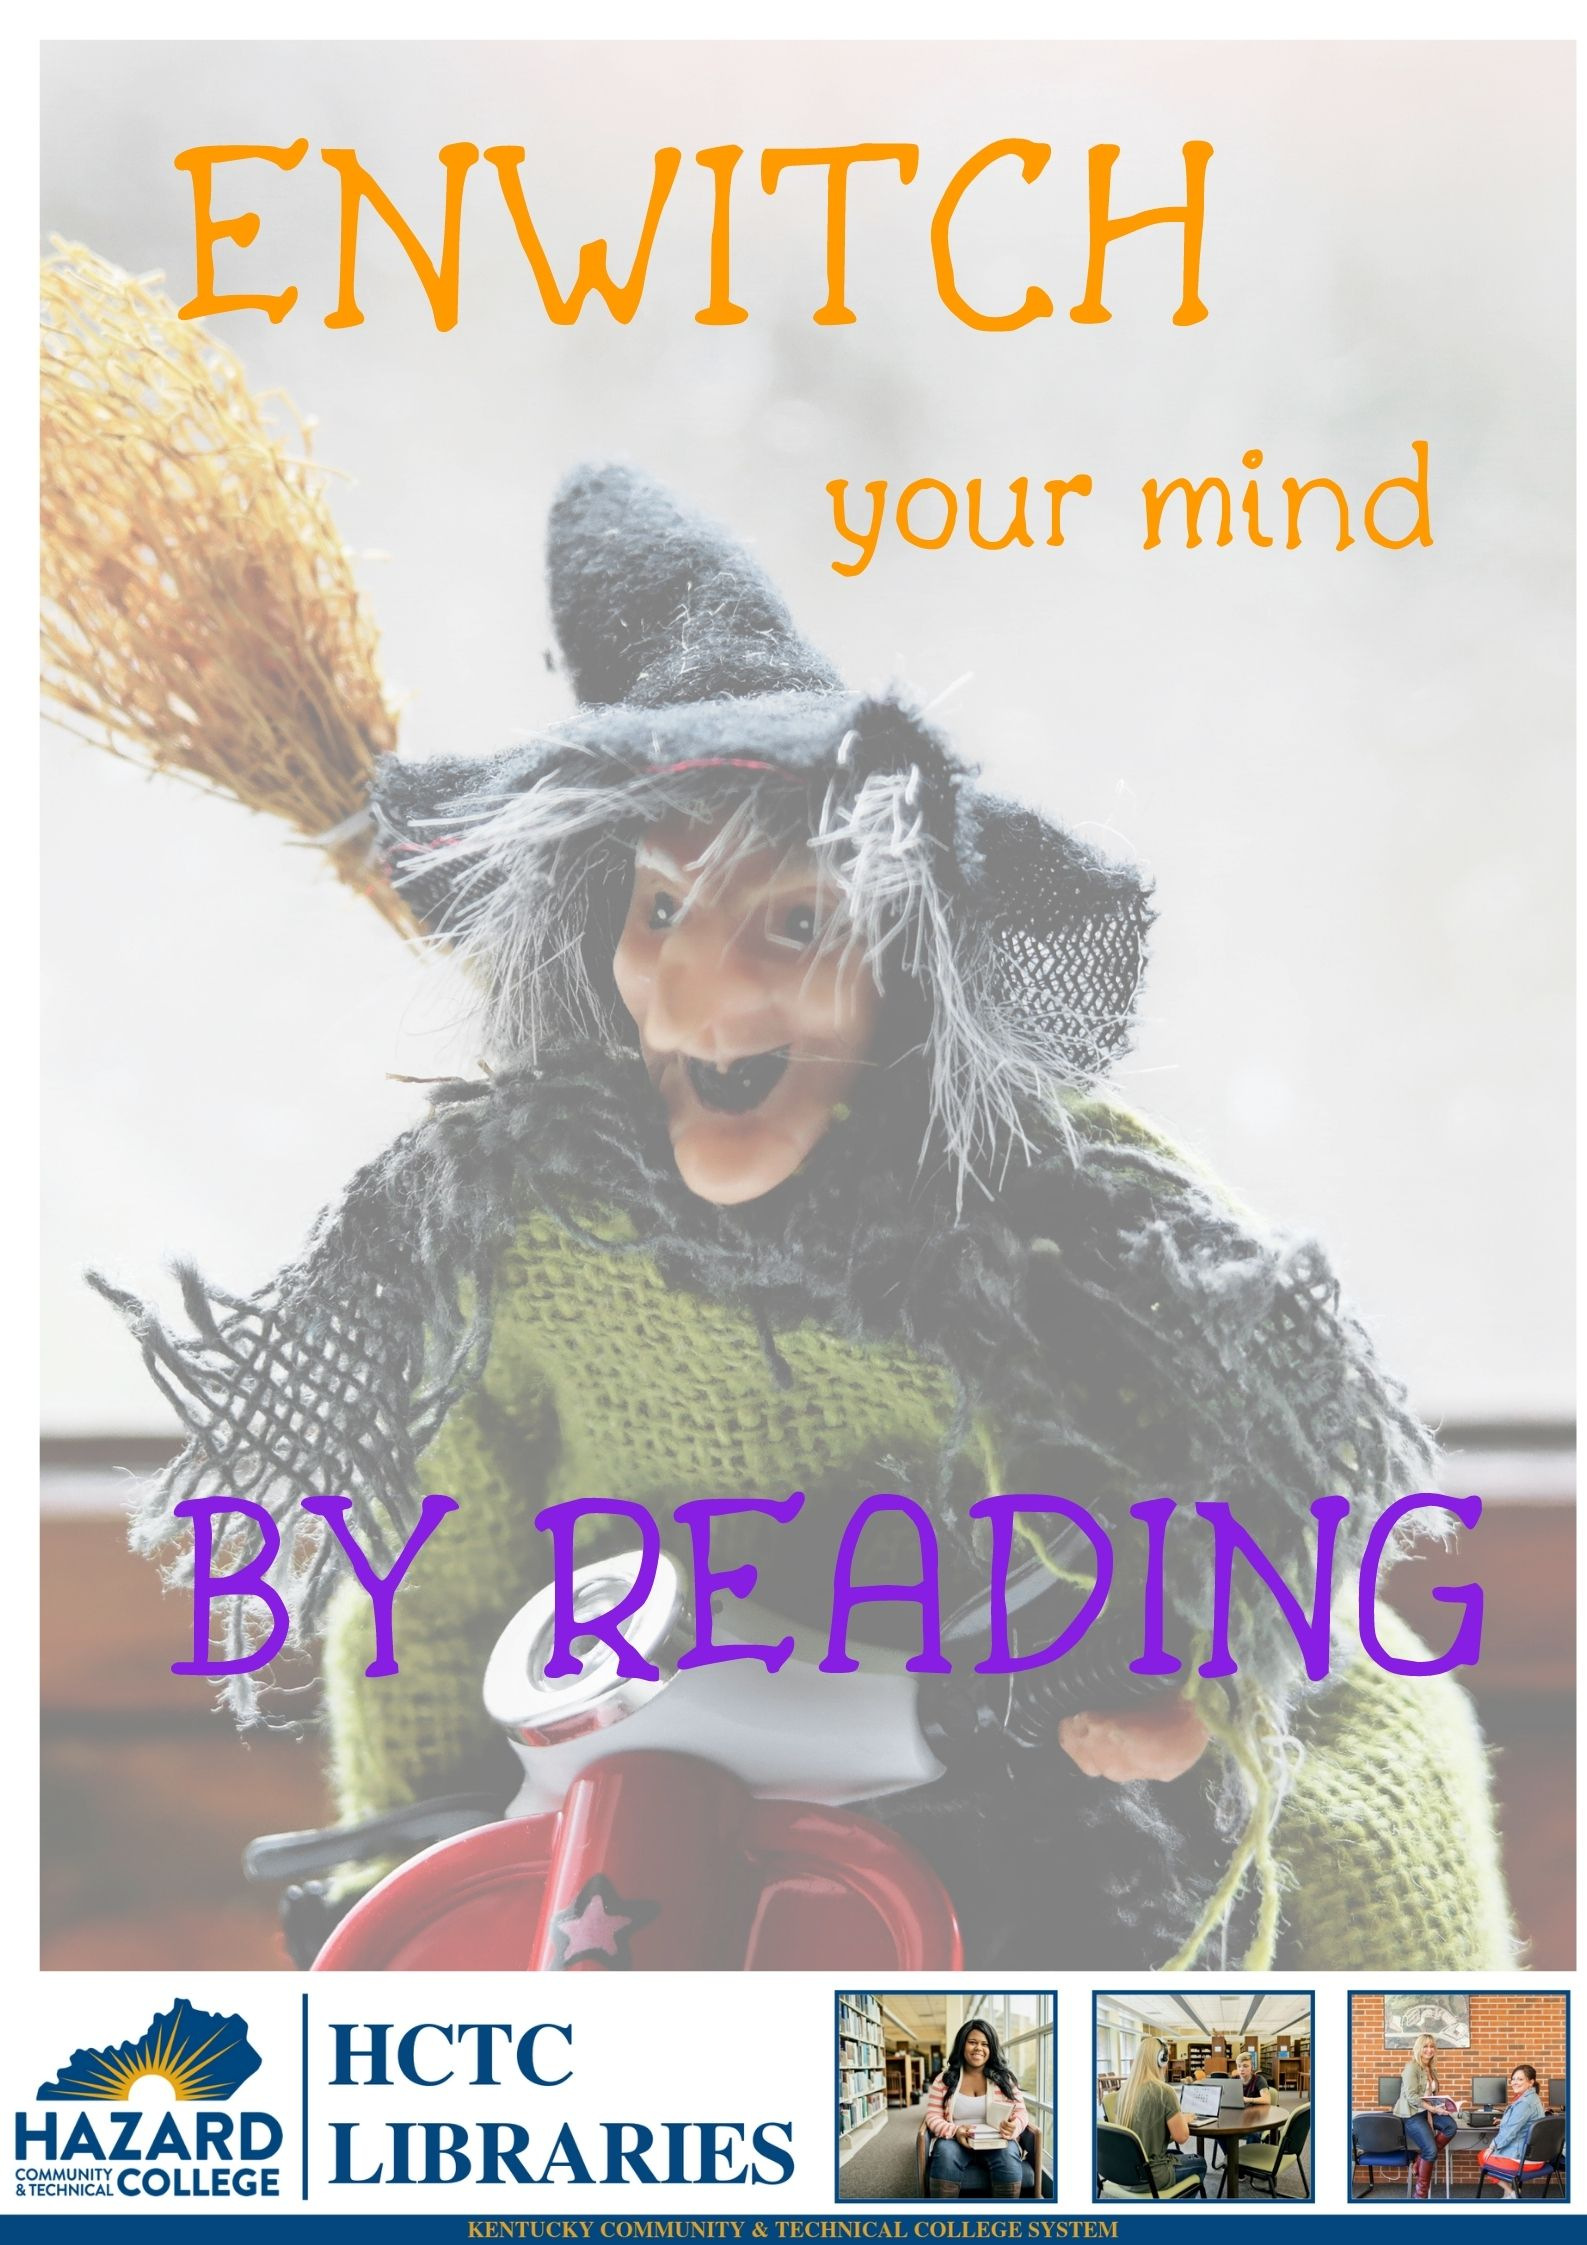 En-witch Your Mind by Reading!